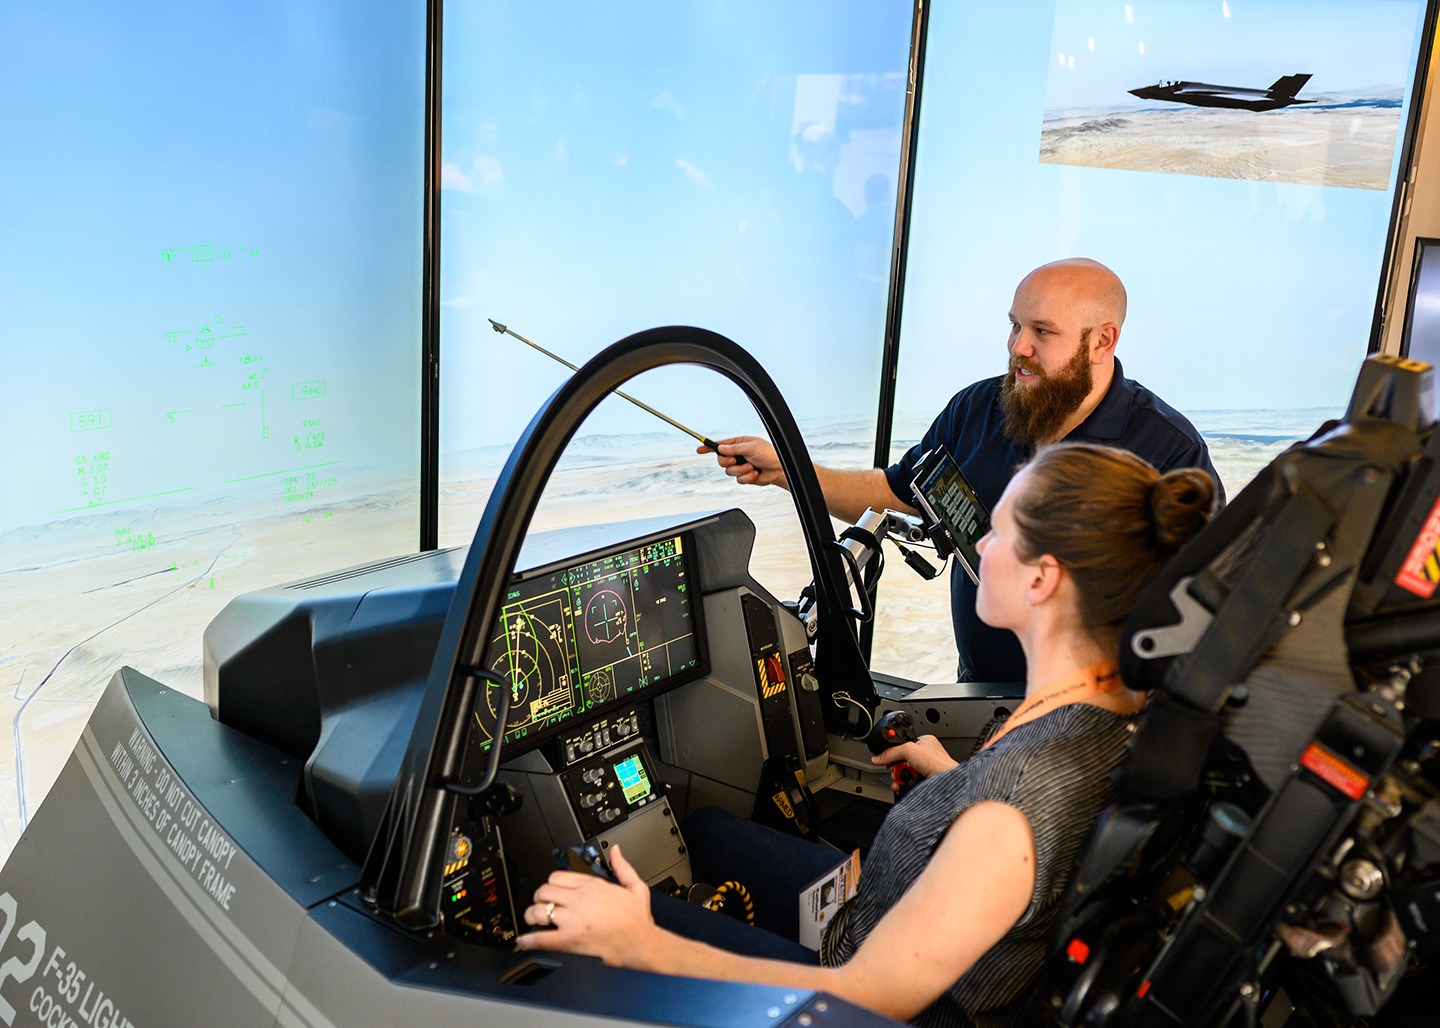 Fort Worth in Flight on Rainey offers participants a chance to experience lightning-fast speed in a F-35 cockpit demonstrator. Photo by Ann Alva Wieding